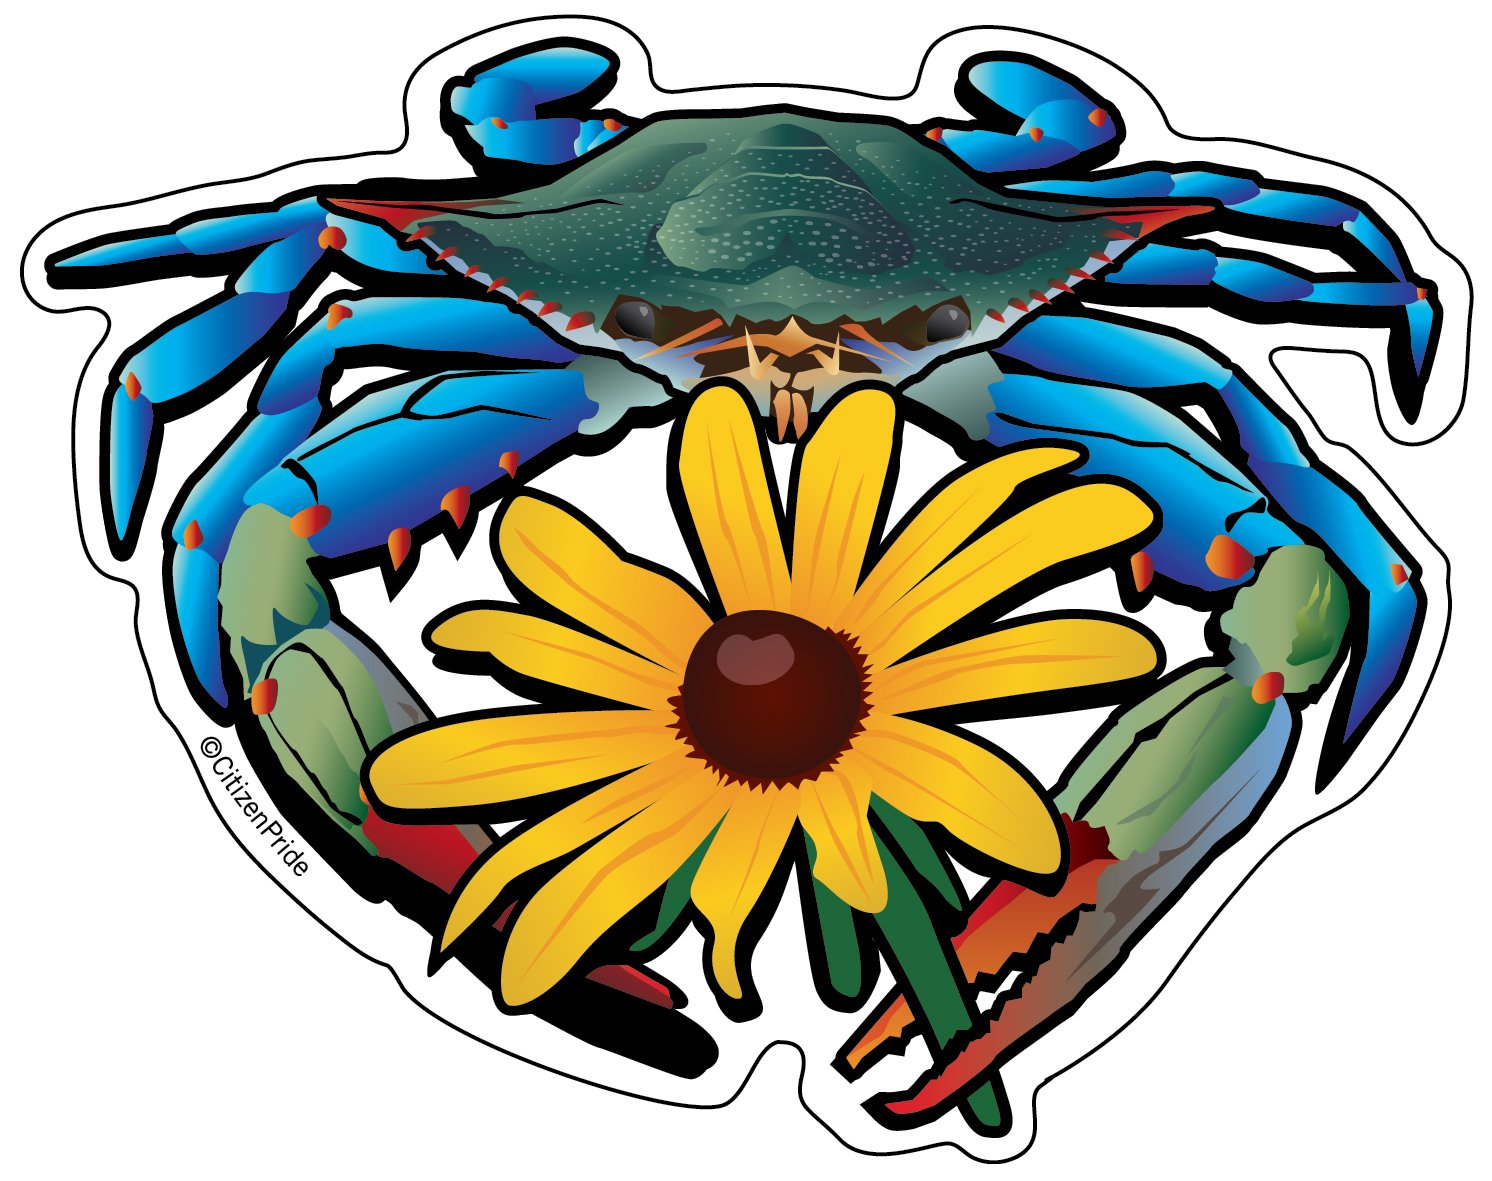 Blue Crab Maryland Black Eyed Susan Sticker 5x4 Black Eyed